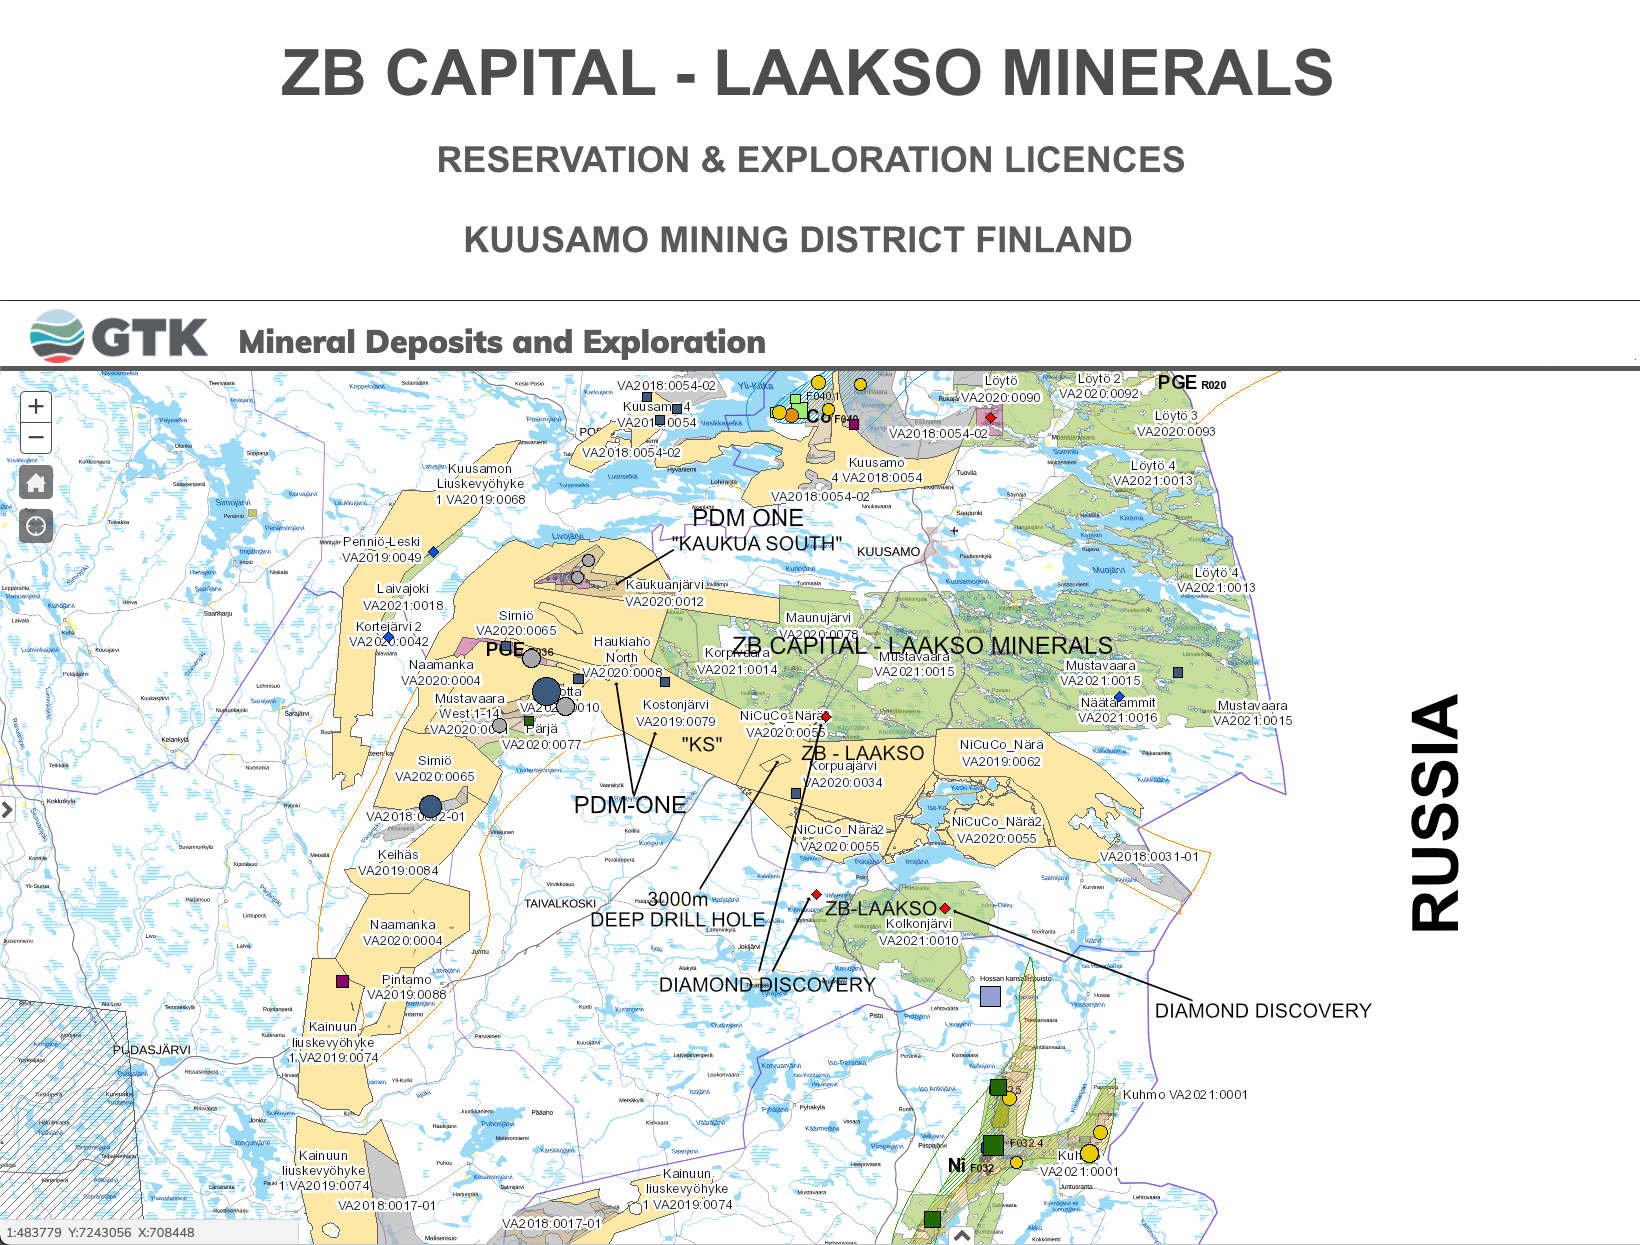 ZB Capital AG - Laakso Minerals Oy - Reservation & Exploration Licences